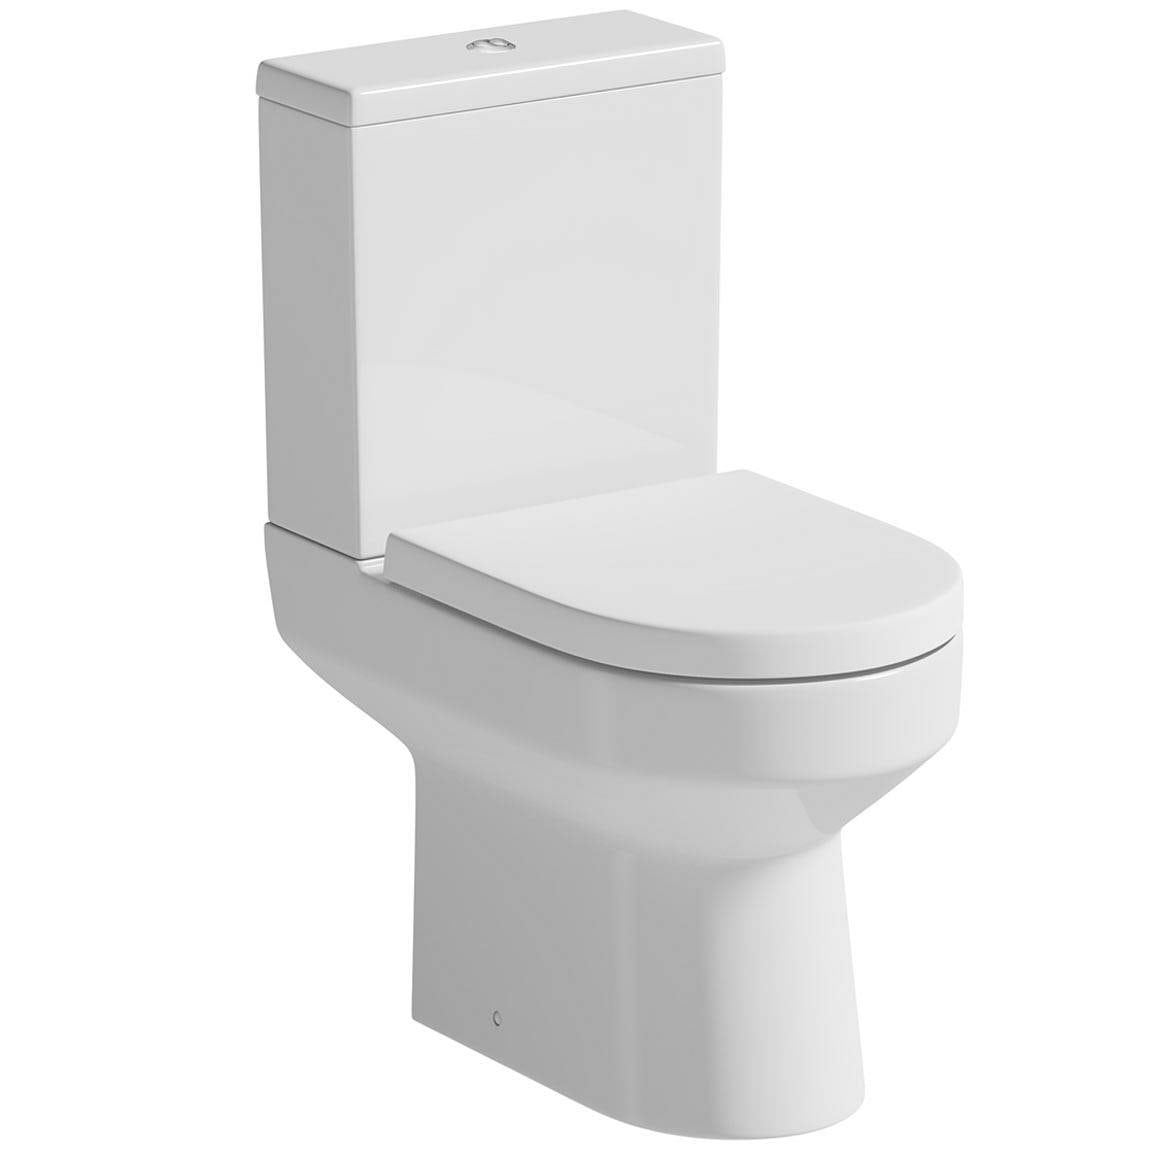 Orchard Wharfe close coupled toilet with soft close seat with pan connector